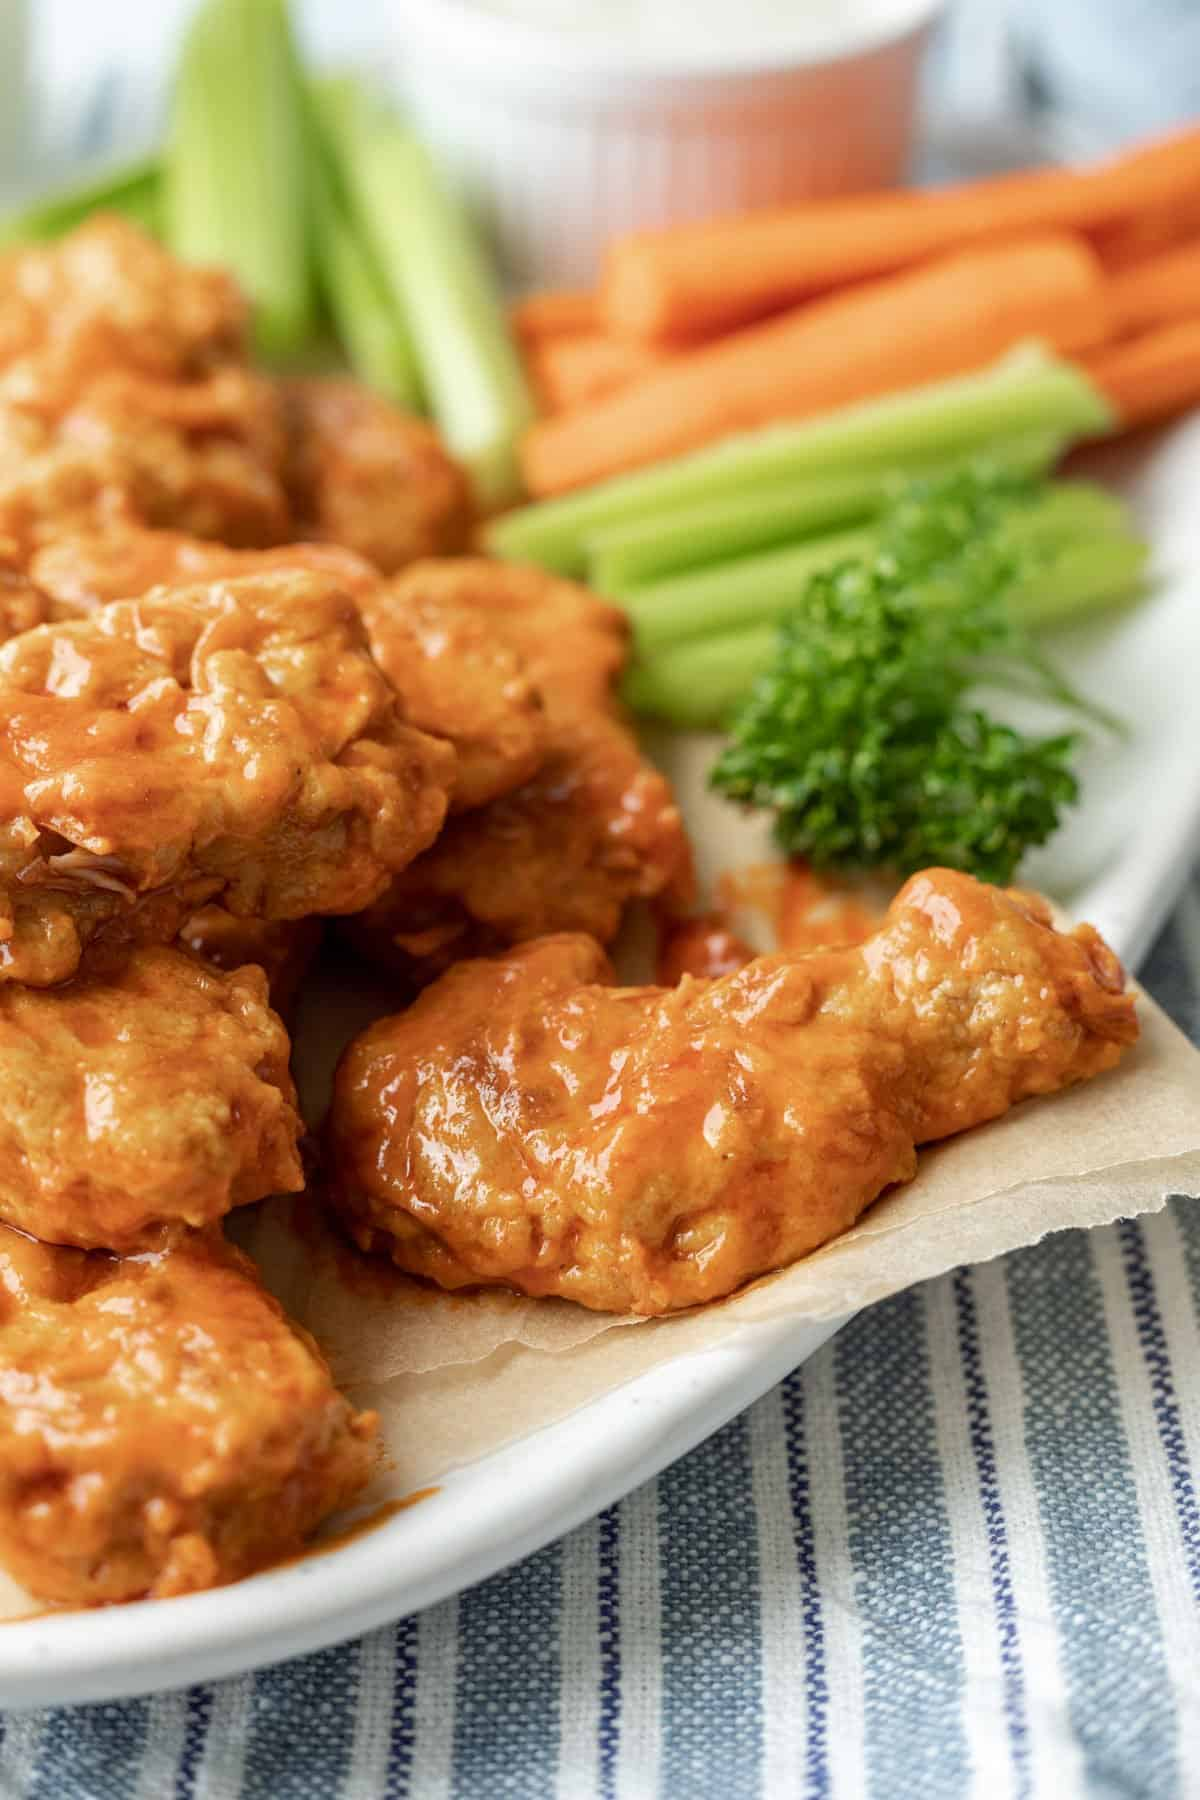 close up photo showing texture of steamed seitan wings covered in buffalo sauce.